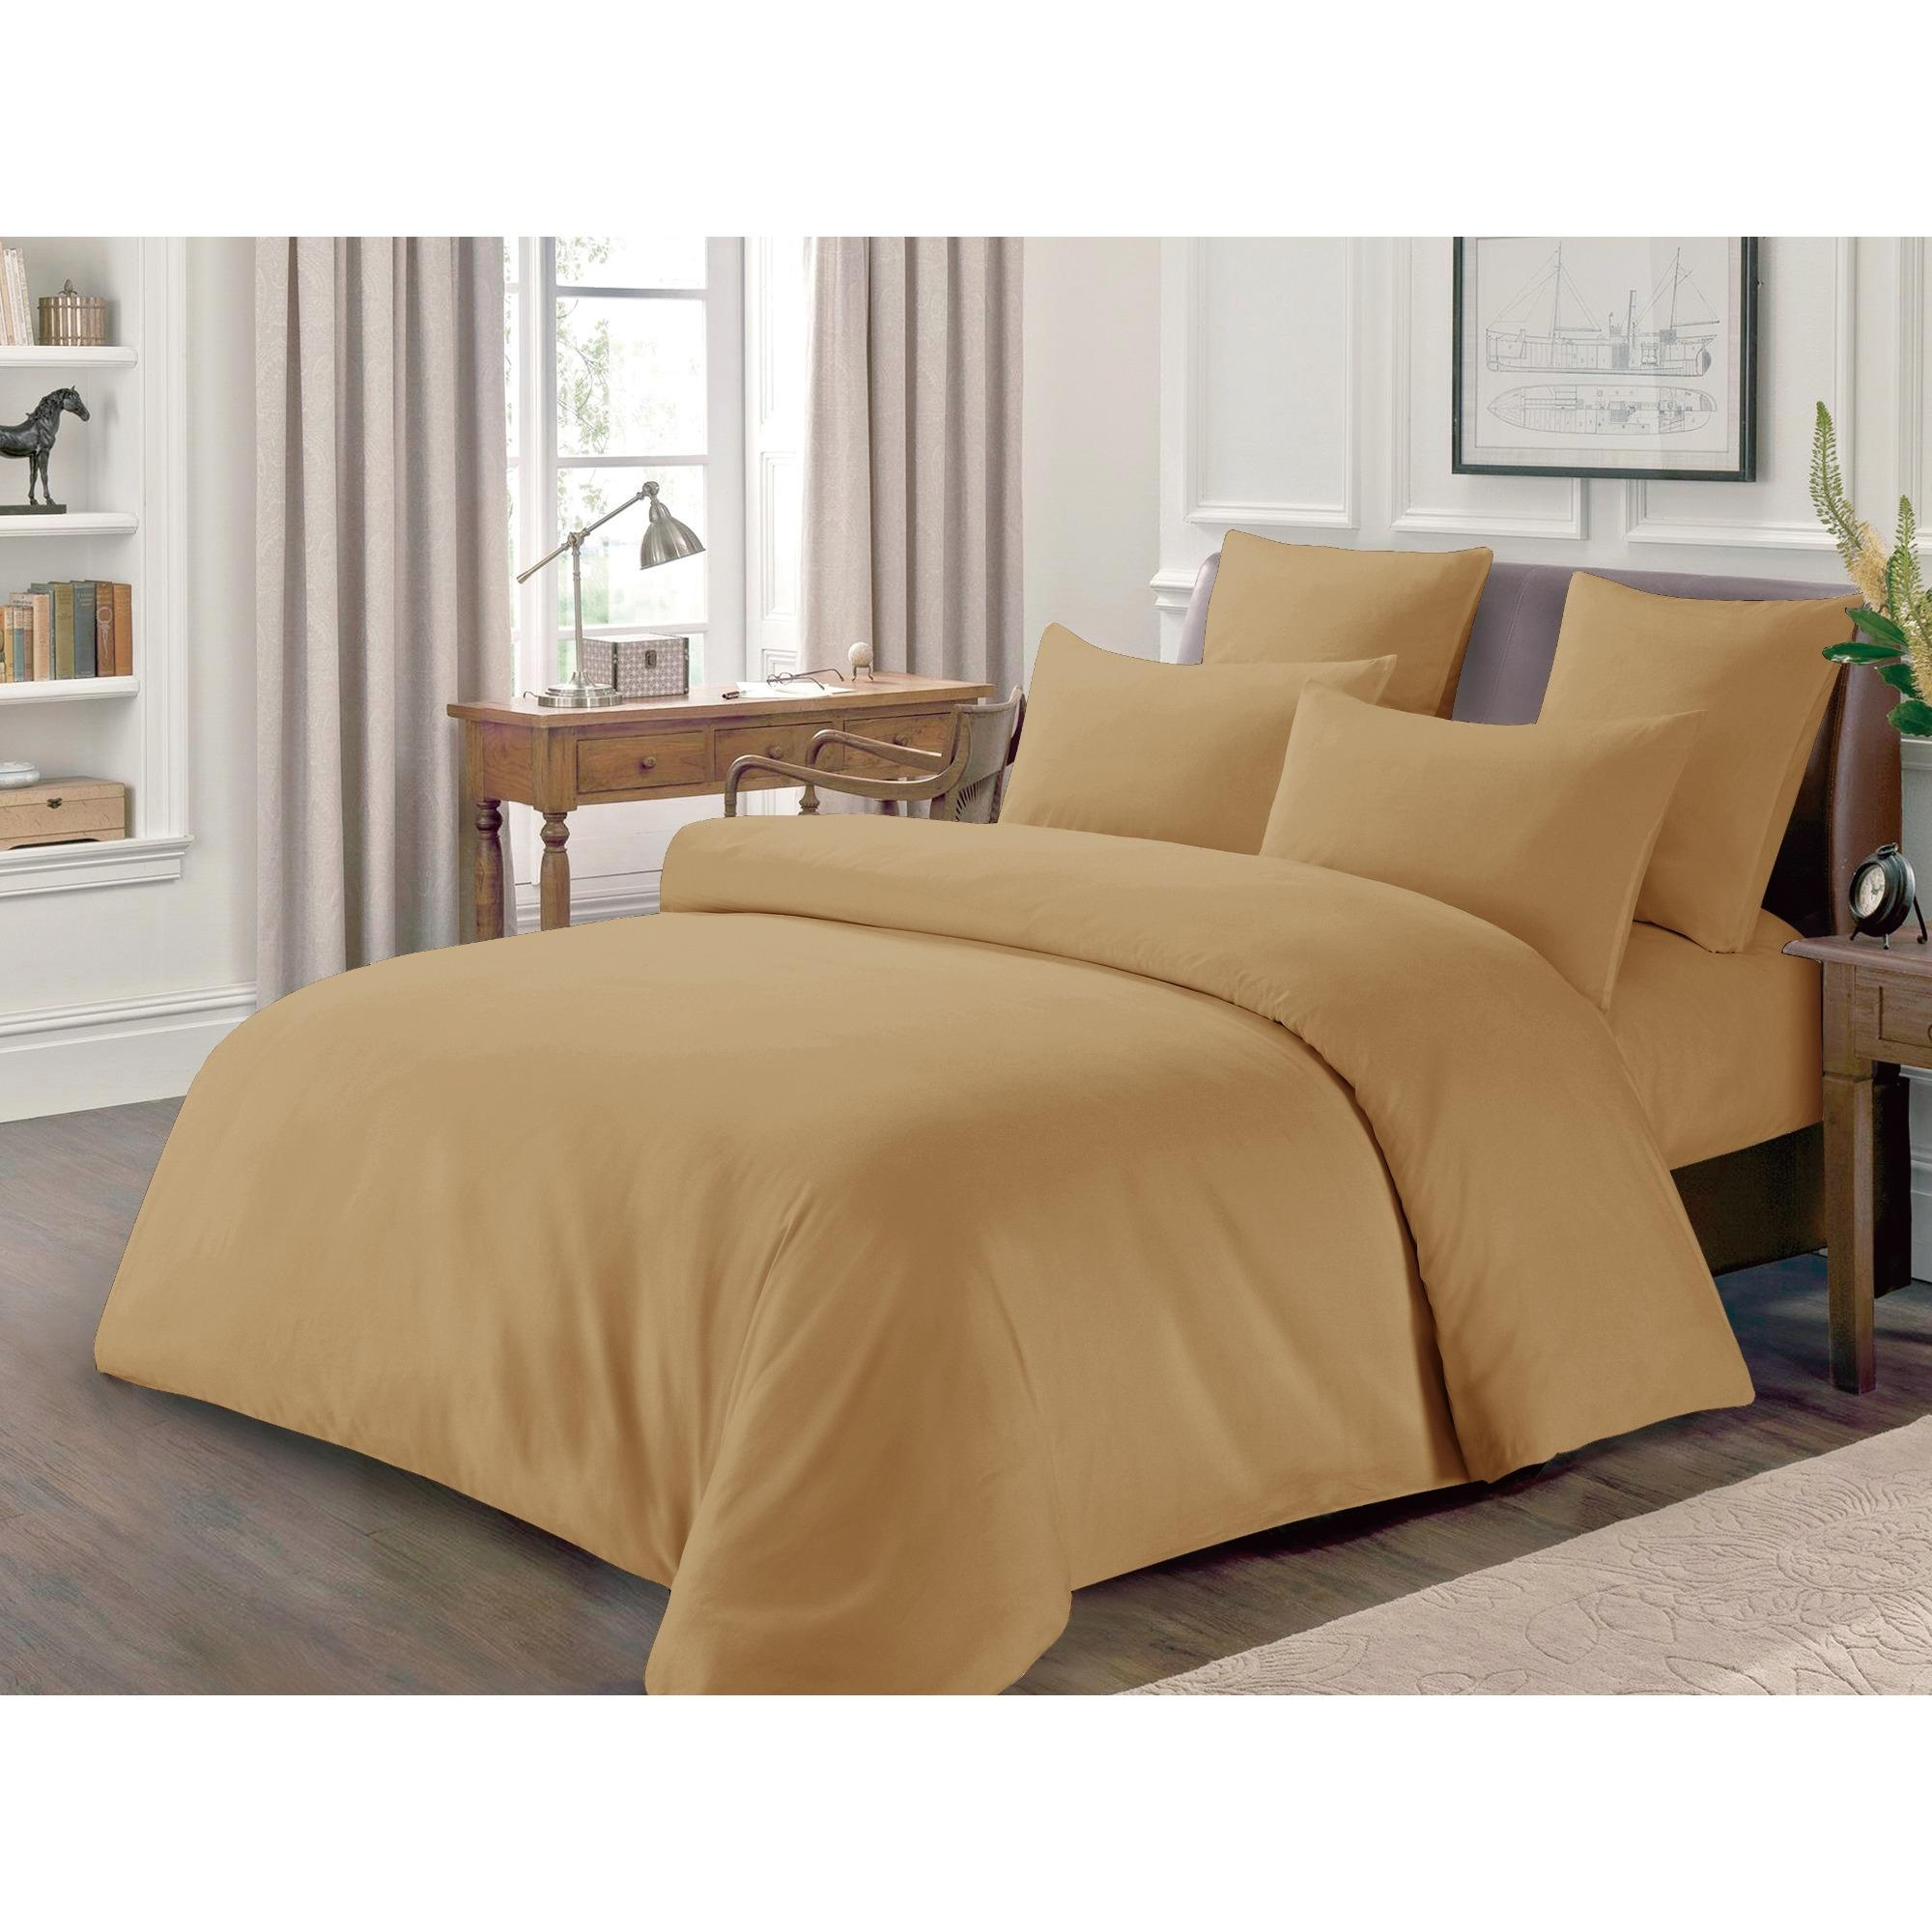 comforter best style sets cool tuscan bedroom features hotel collection